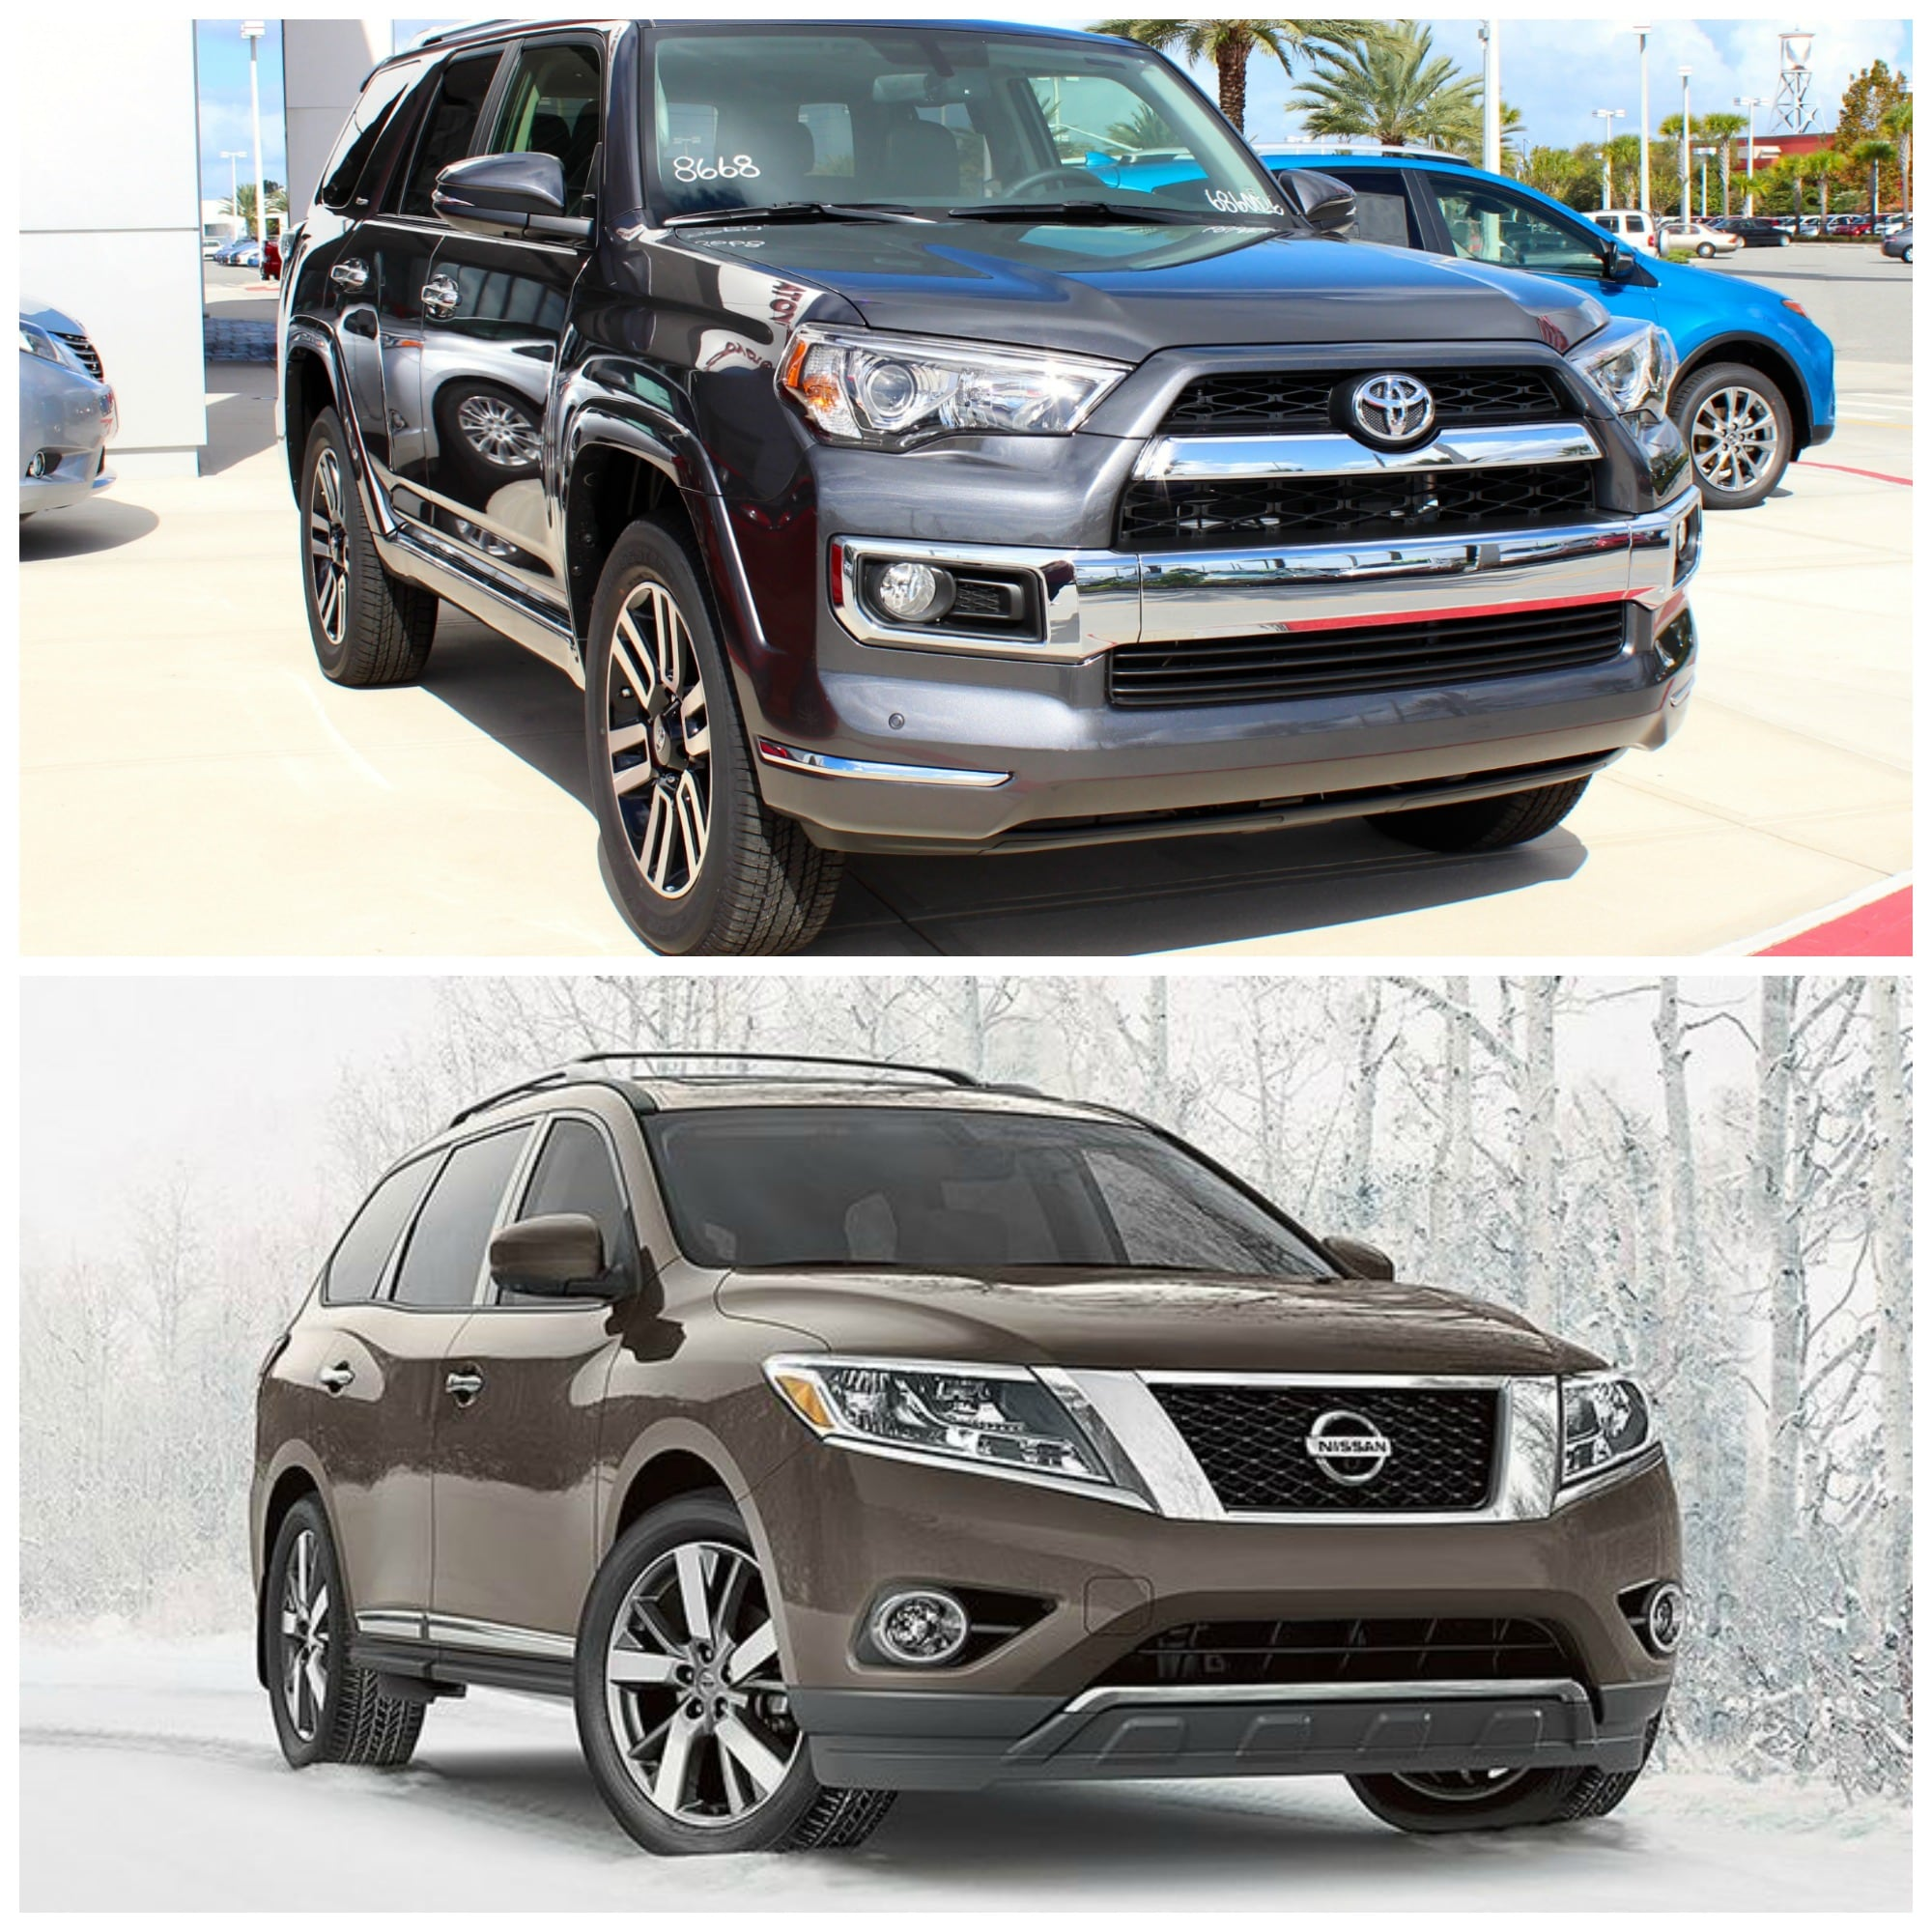 2016 toyota 4runner vs nissan pathfinder new toyota suv. Black Bedroom Furniture Sets. Home Design Ideas